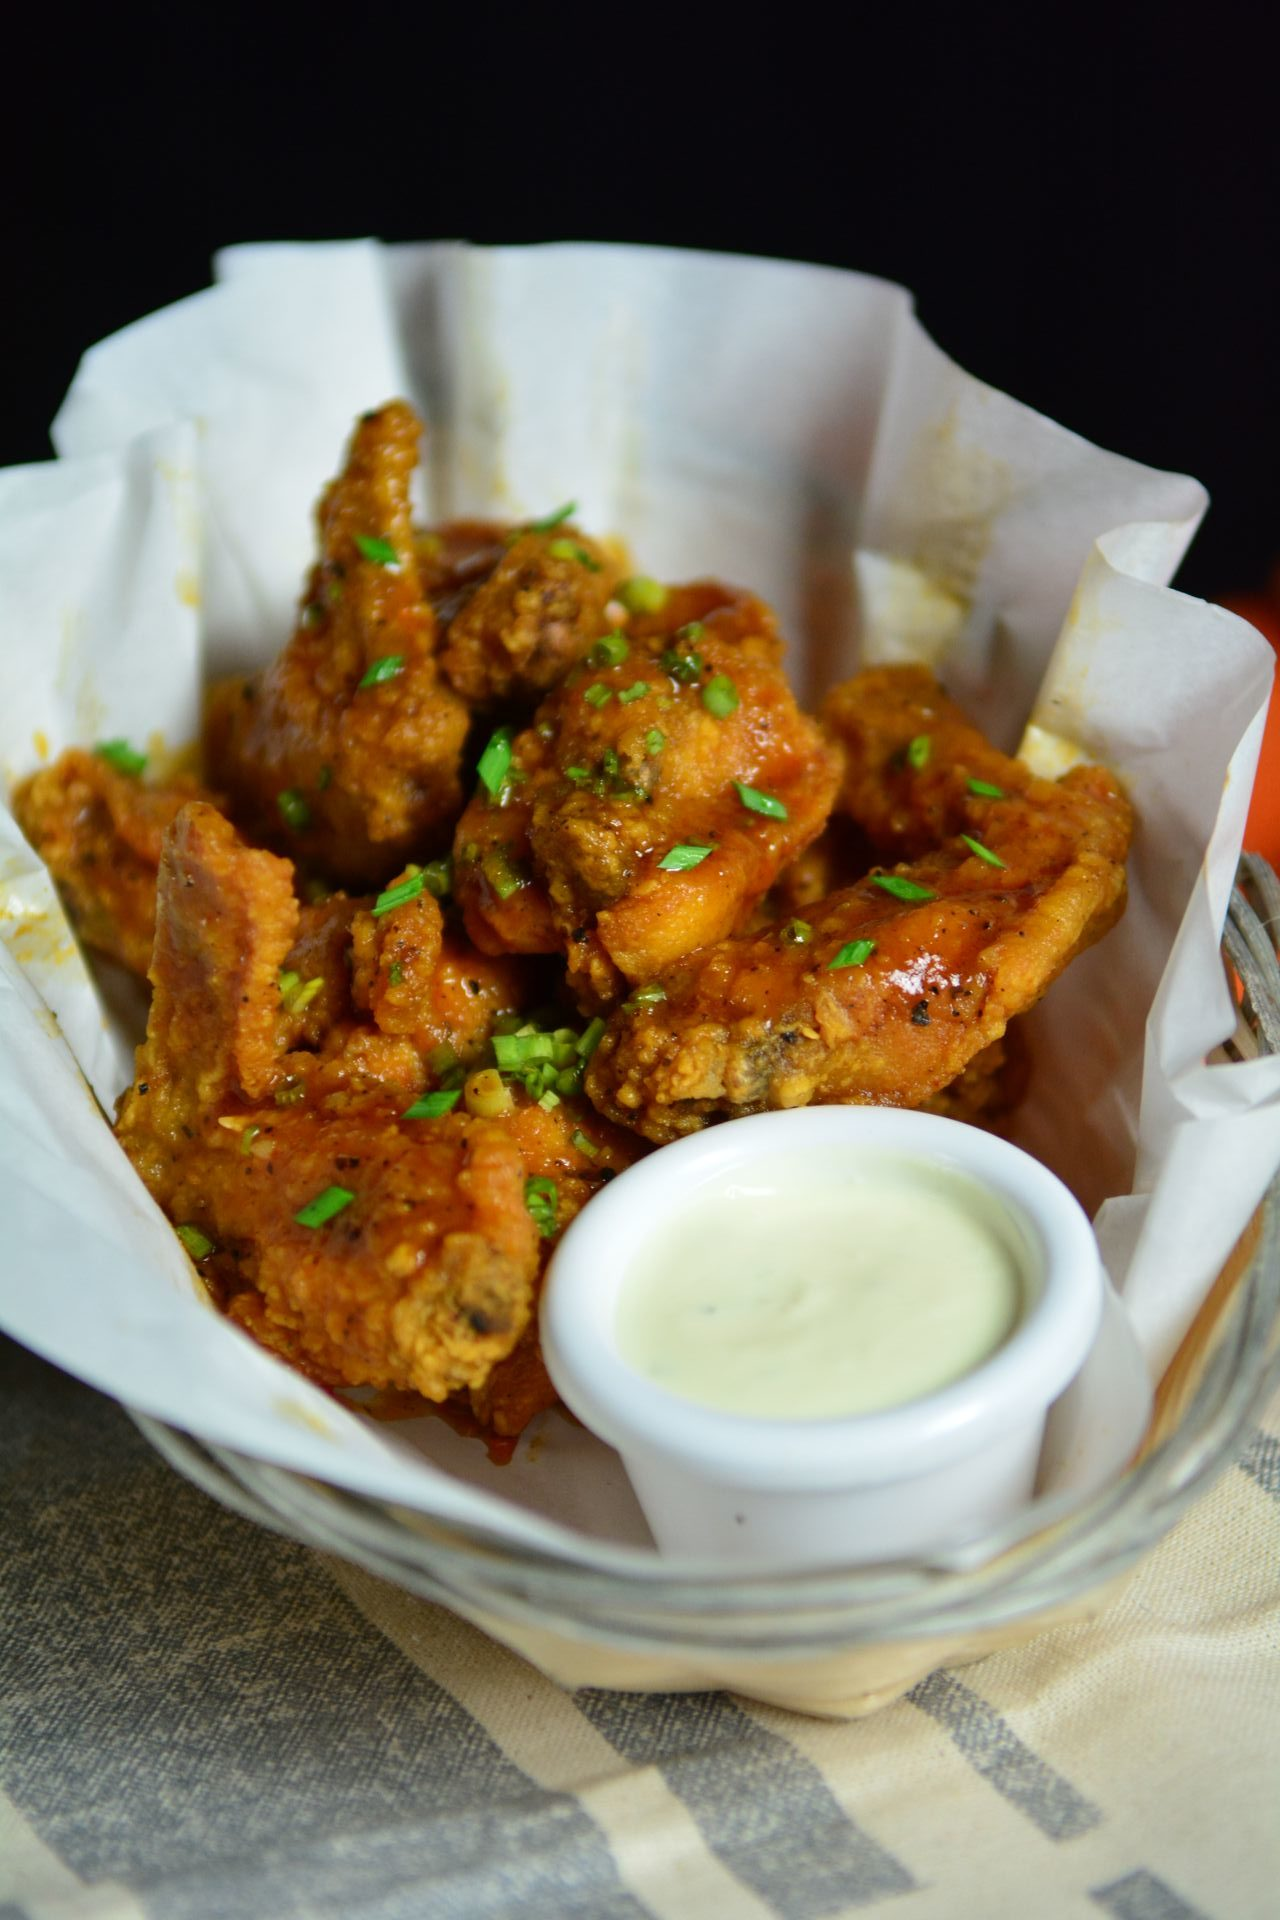 Epic Hot Wings